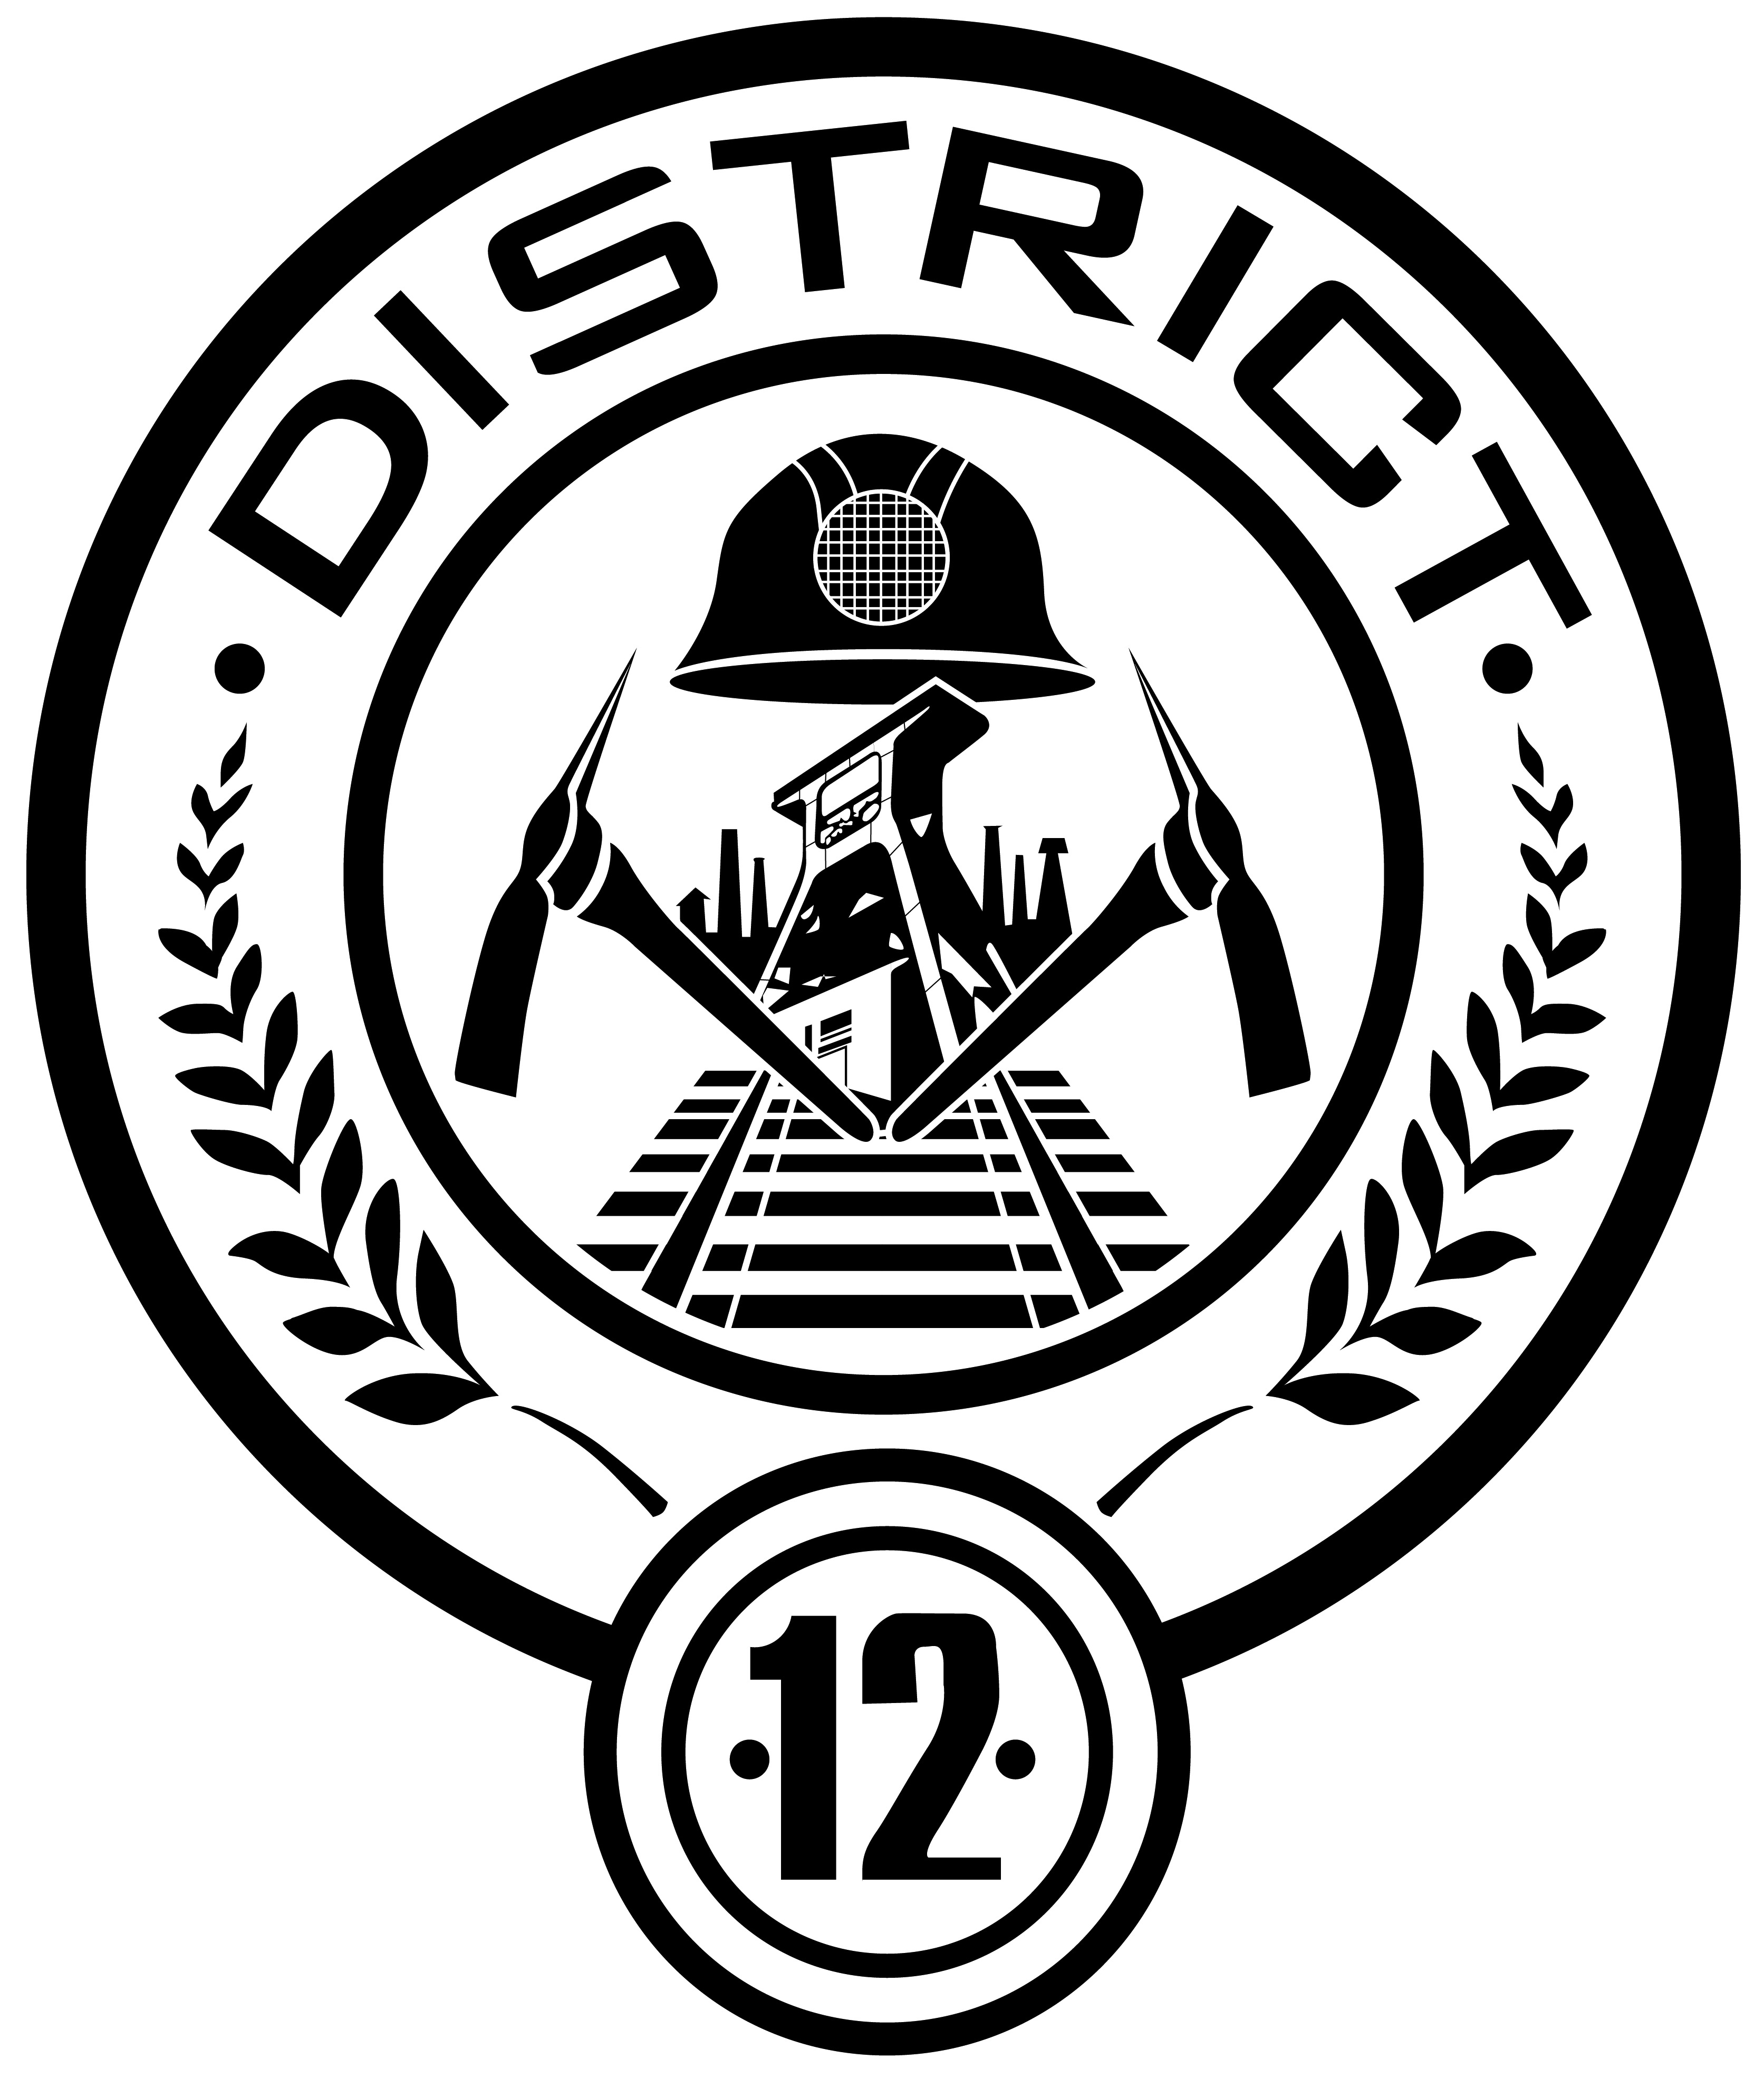 Hunger Games District 12 badge